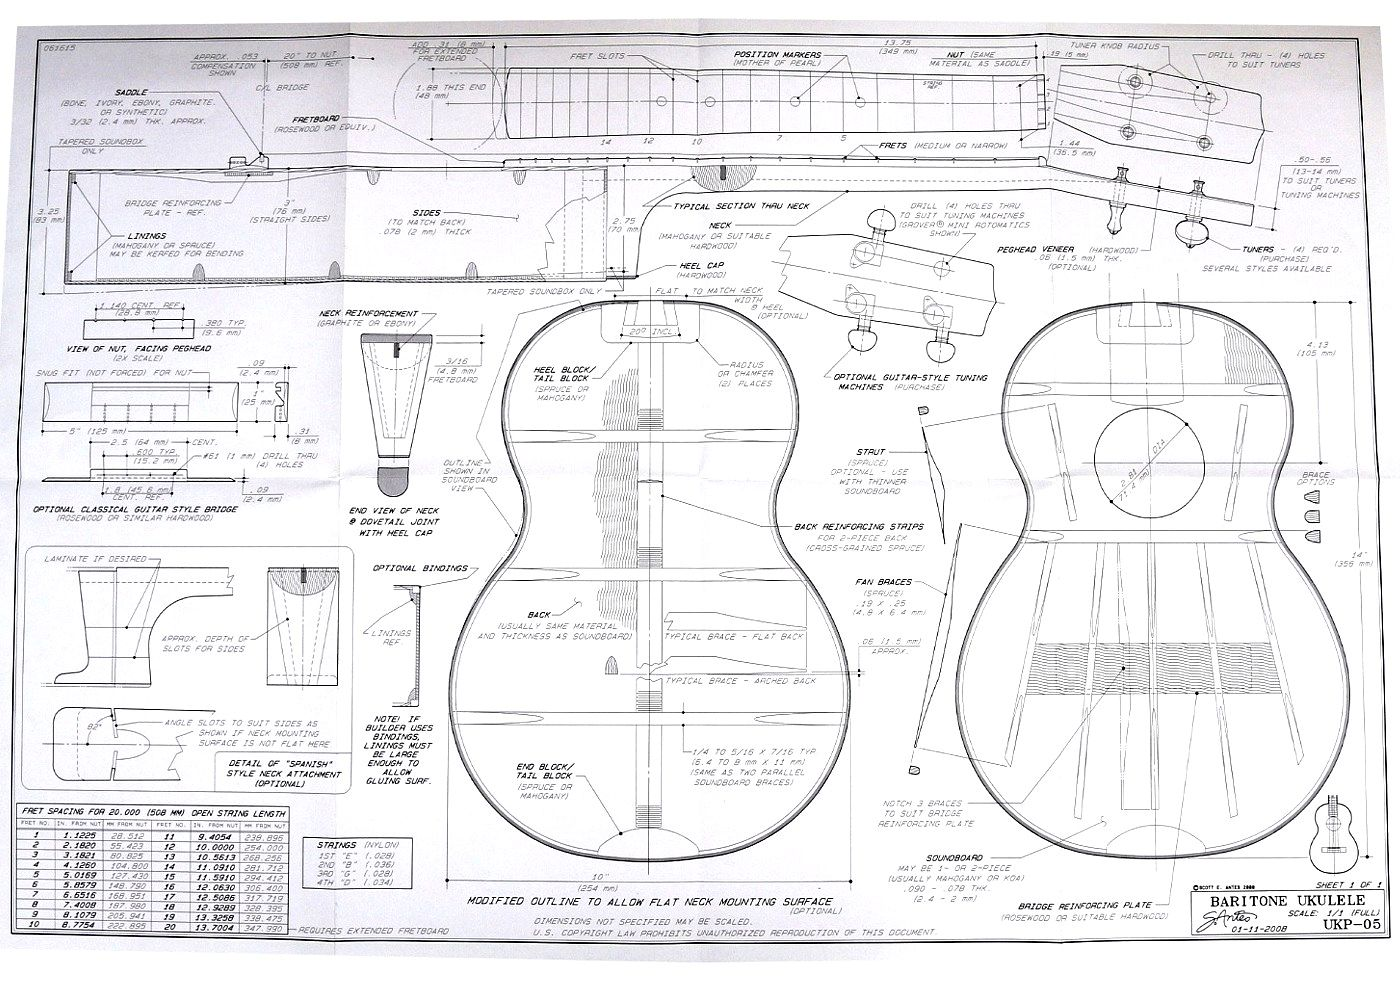 Full size blueprint for baritone ukulele 20 inch scale for Blueprint sizes